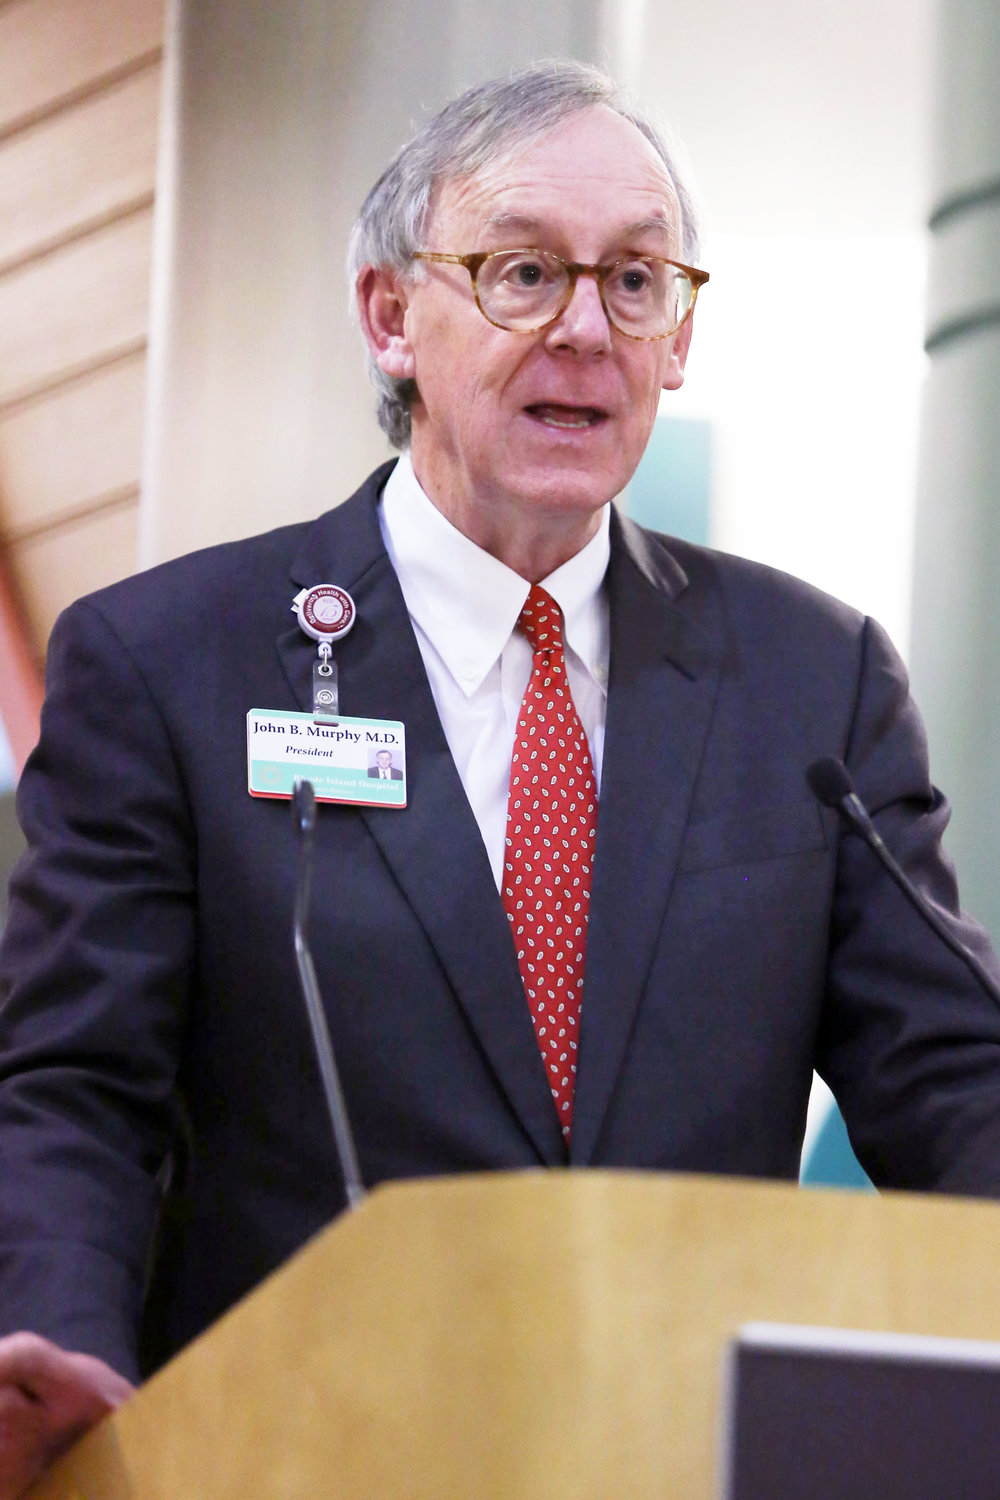 Barrington resident Dr. John Murphy, president of Rhode Island Hospital/Hasbro Children's Hospital and lead physician for Lifespan, delivers a speech. Dr. Murphy was recently selected for the 2020 Dennis W. Jahnigen Award from the American Geriatrics Society.